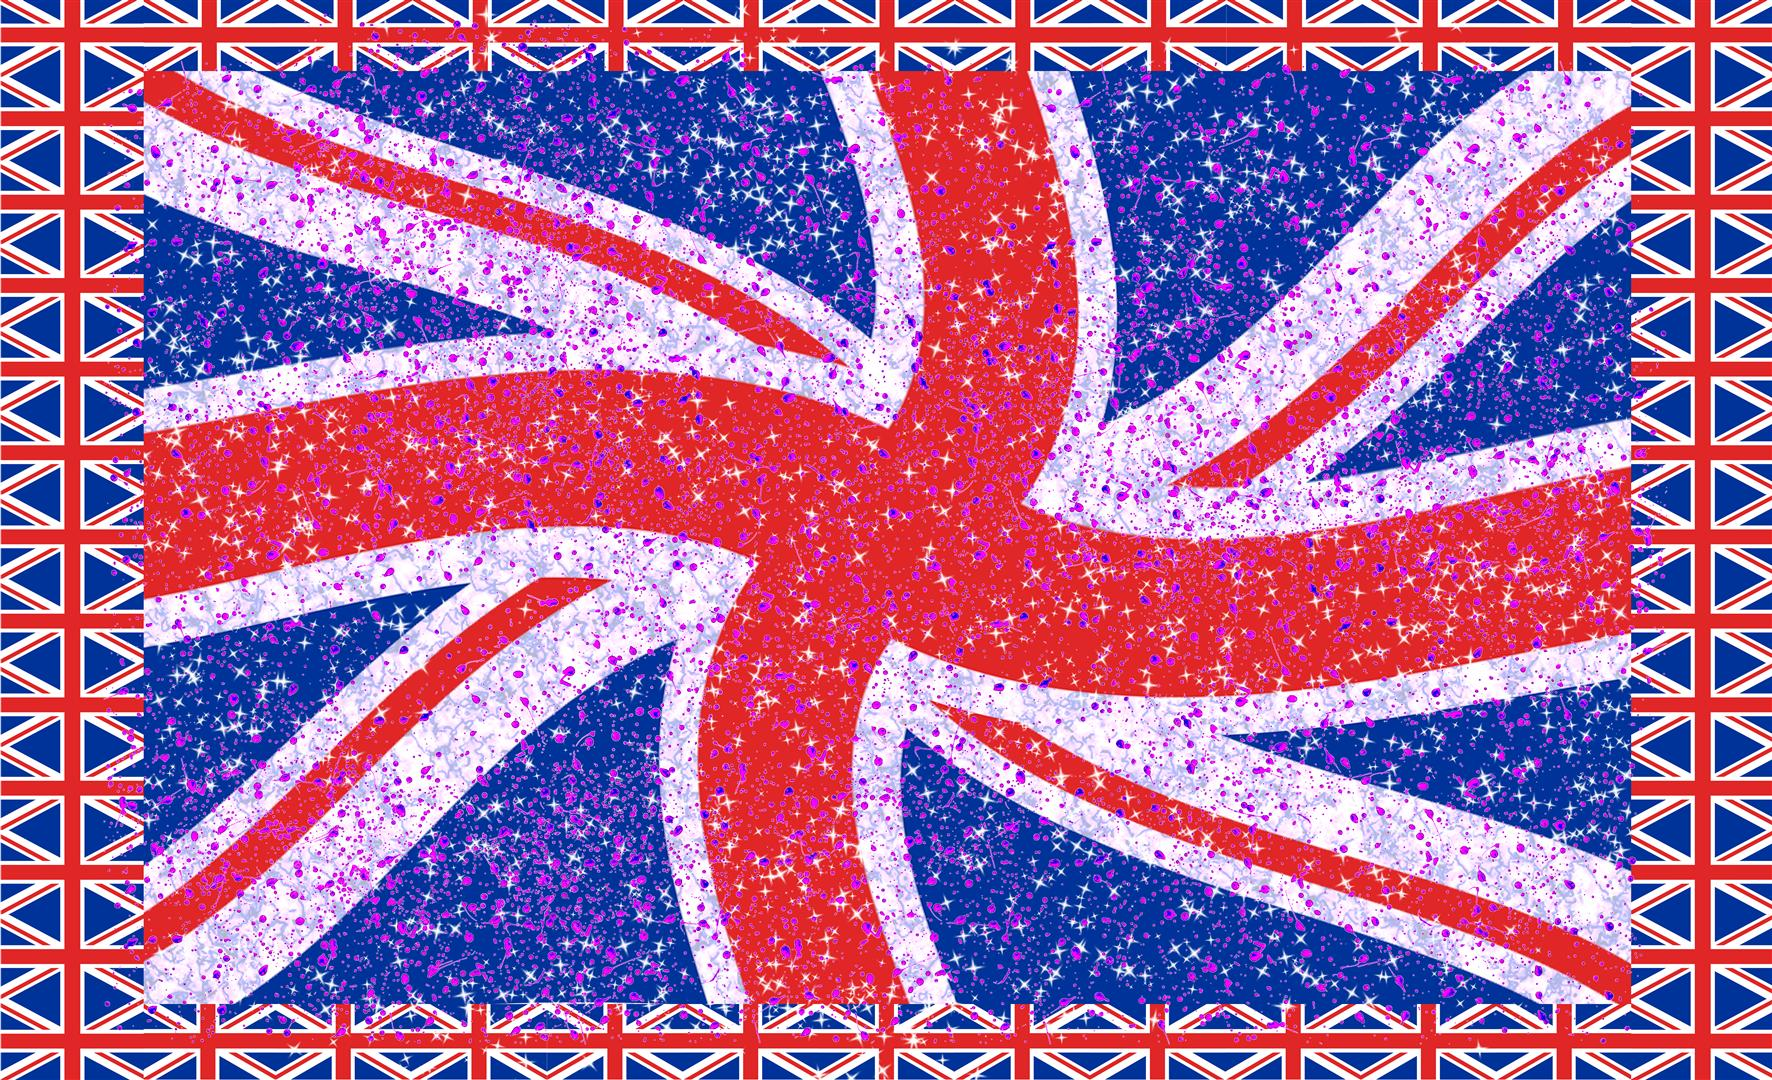 Union Jack Starry Waved